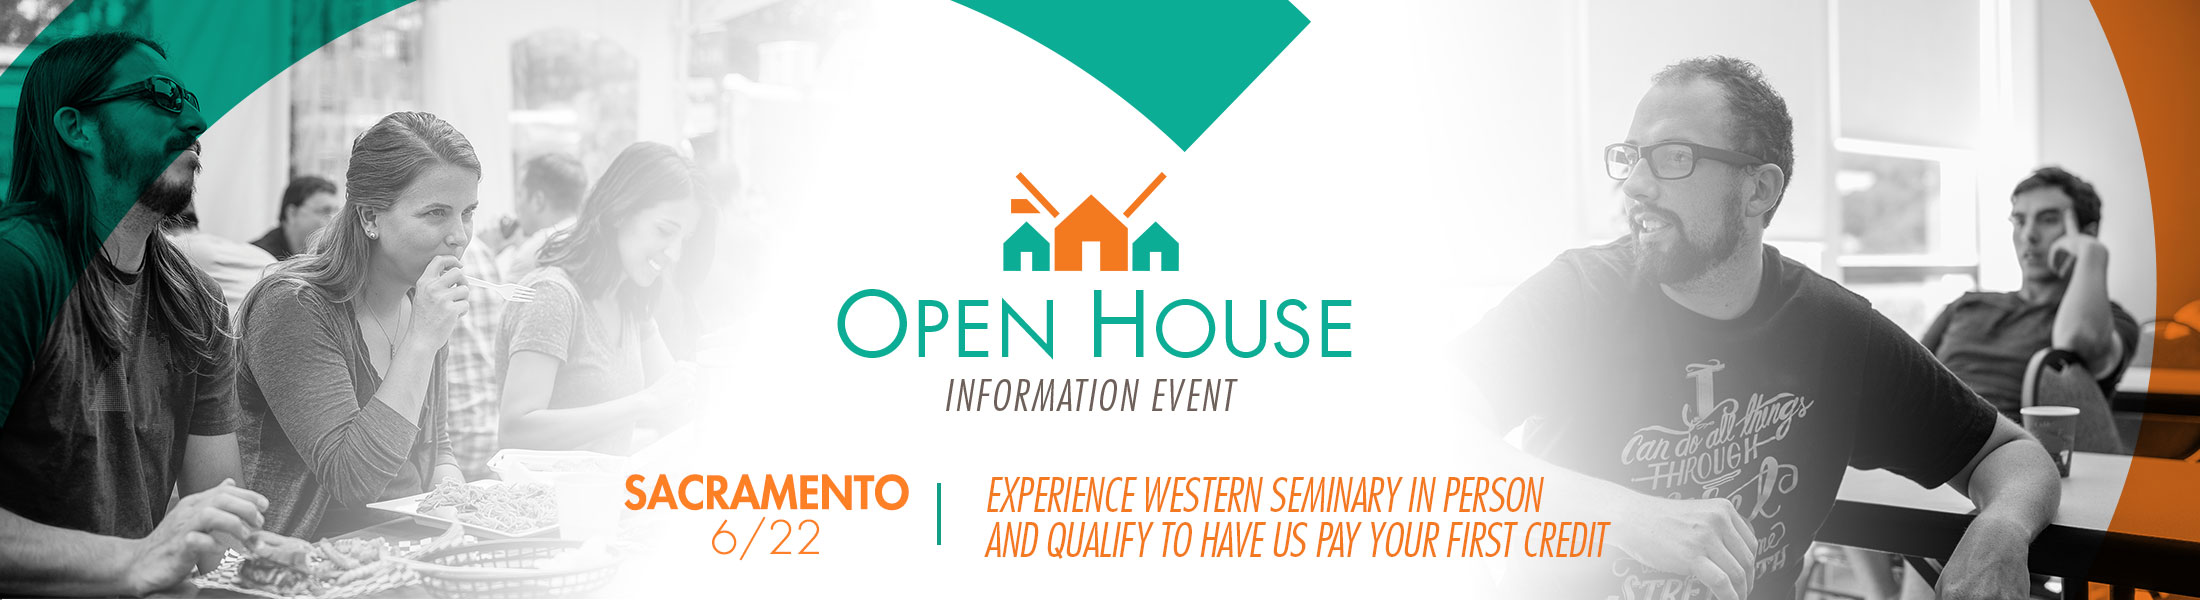 Open House Information Event at Western Seminary